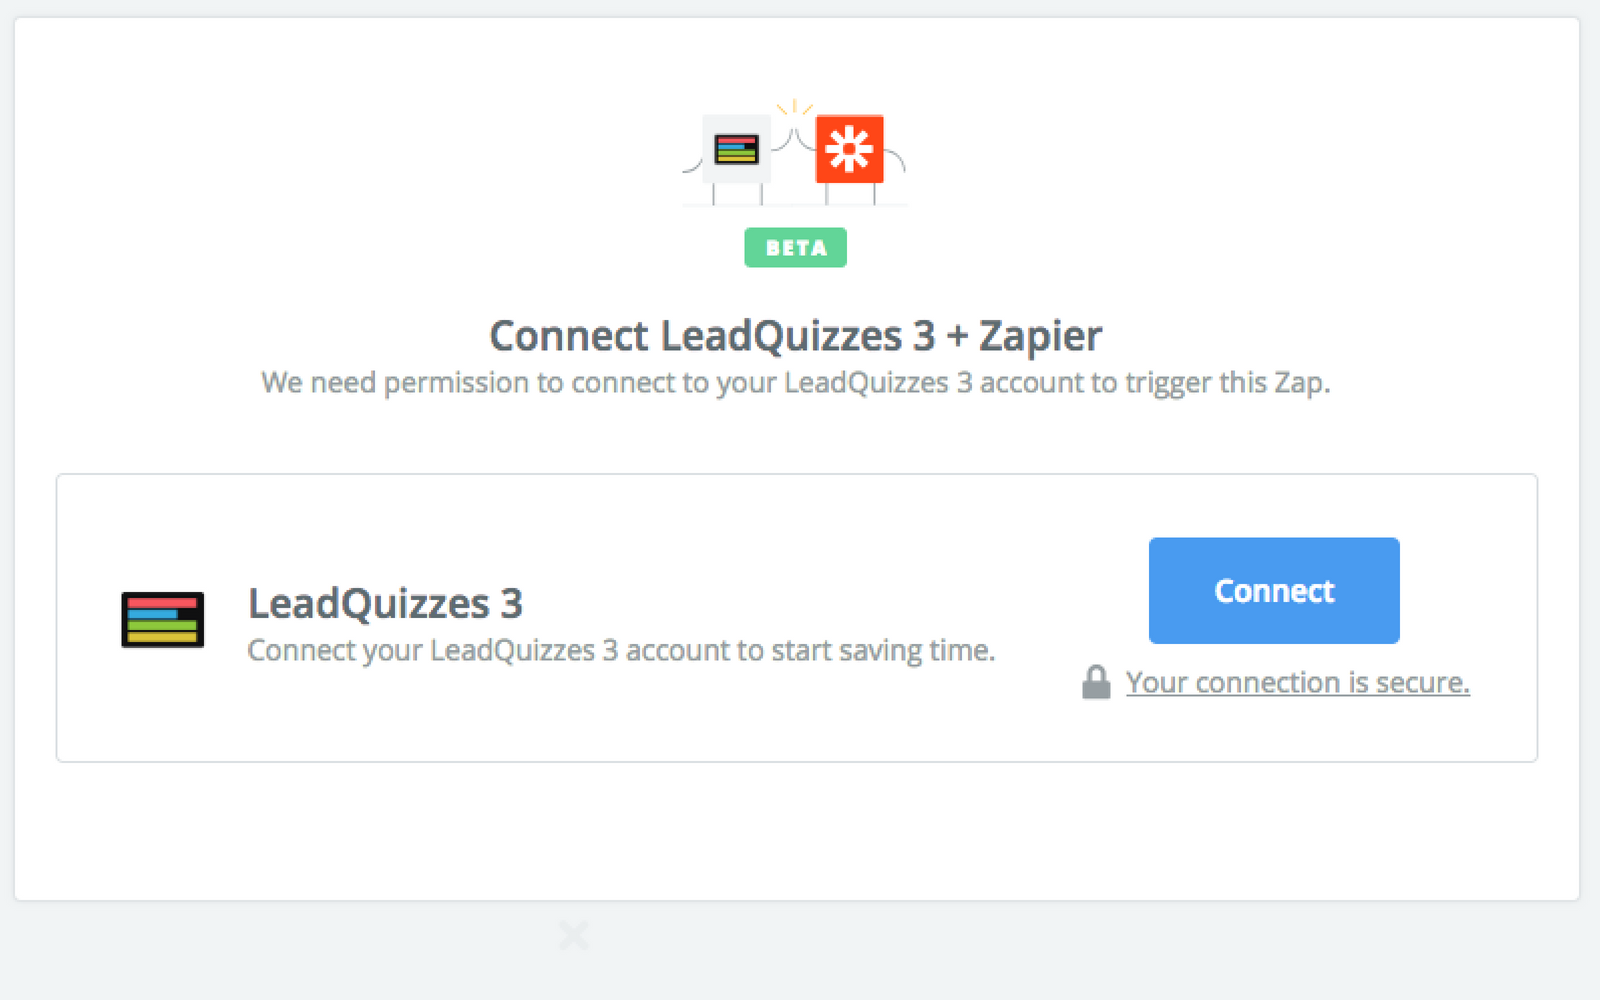 Click to connect LeadQuizzes 3